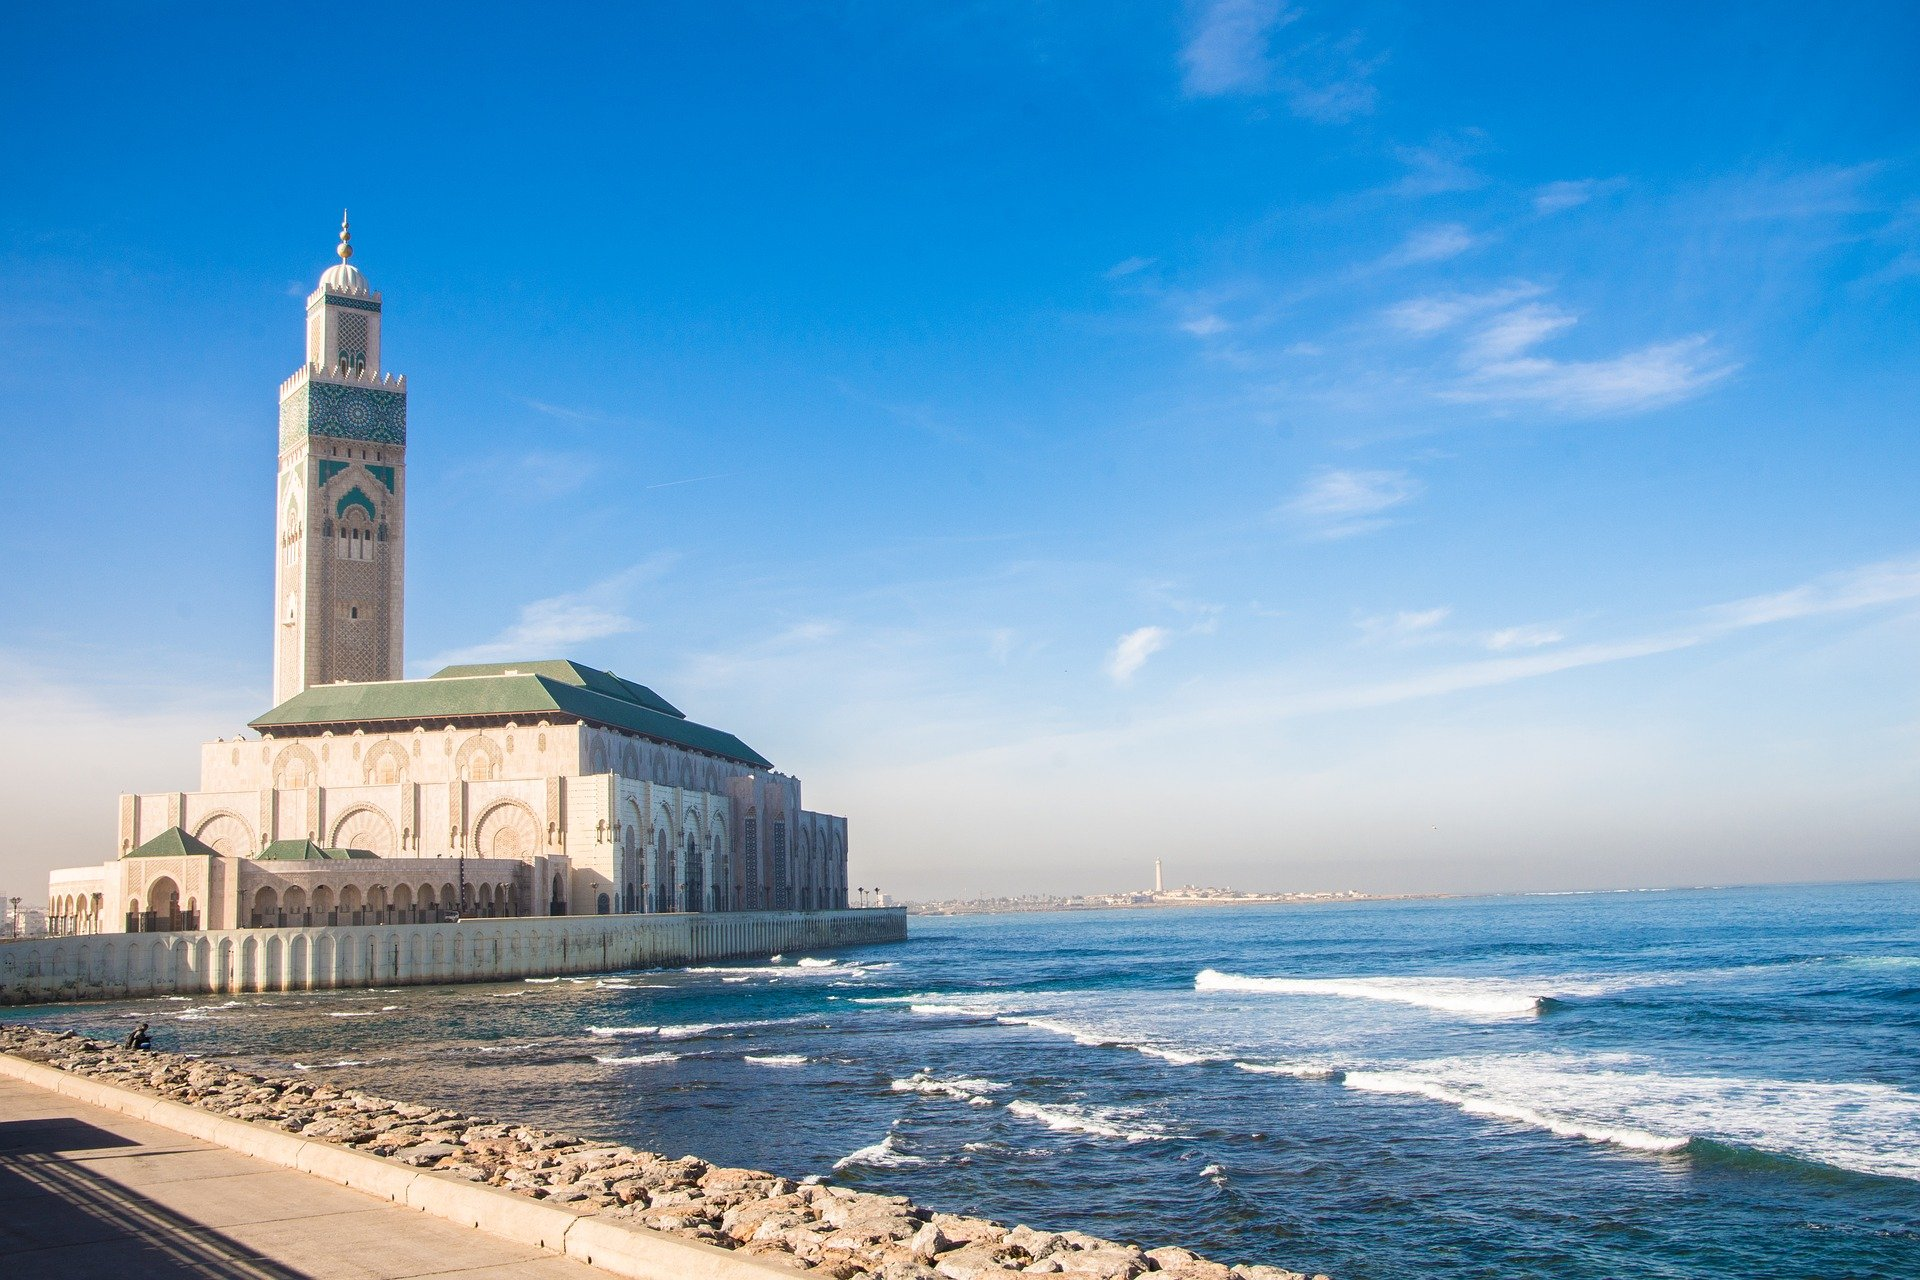 the Hassan II Mosque in Morocco on the Atlantic coast